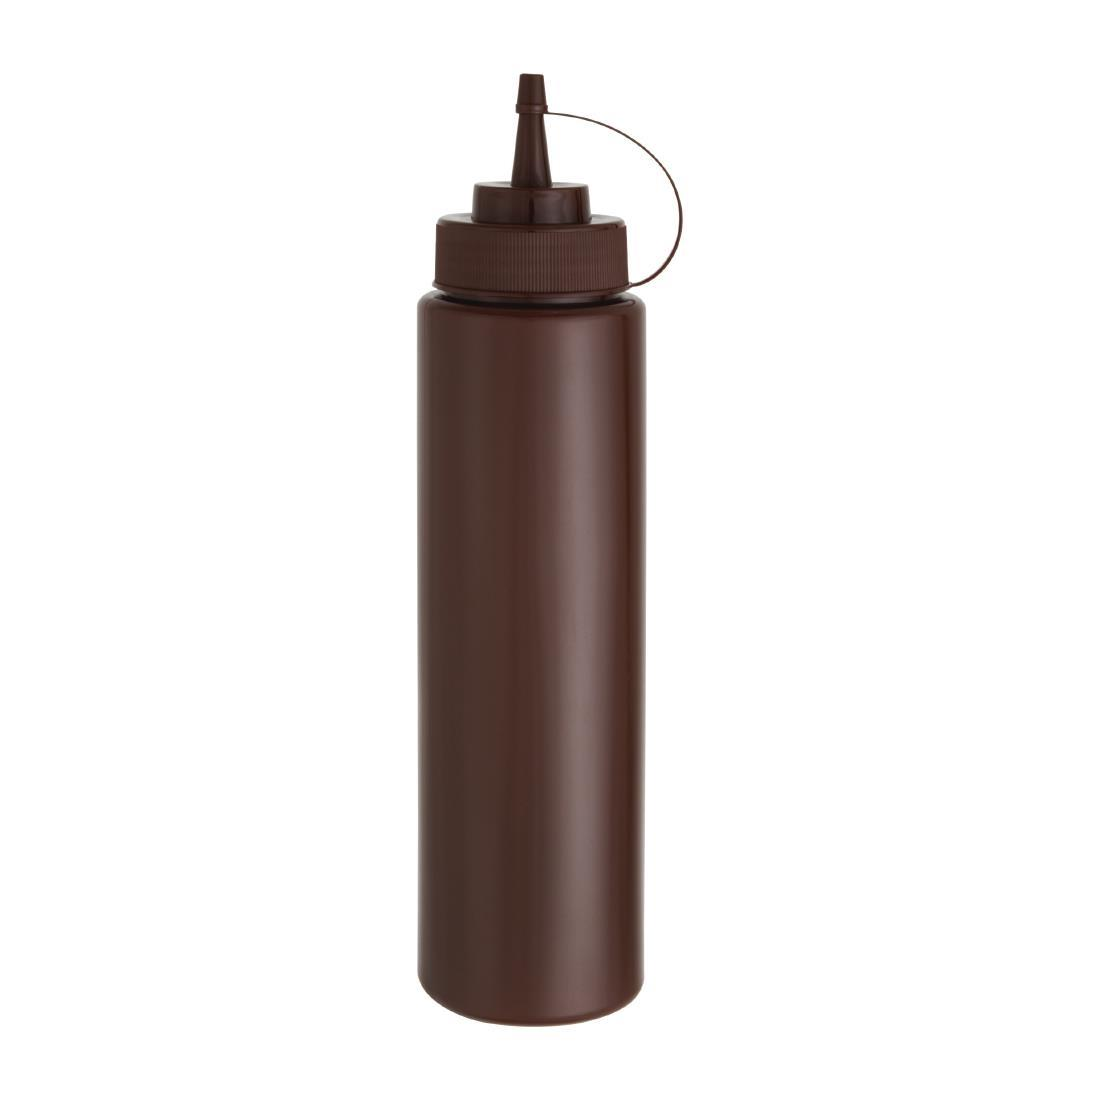 W835 - Brown Squeeze Sauce Bottle